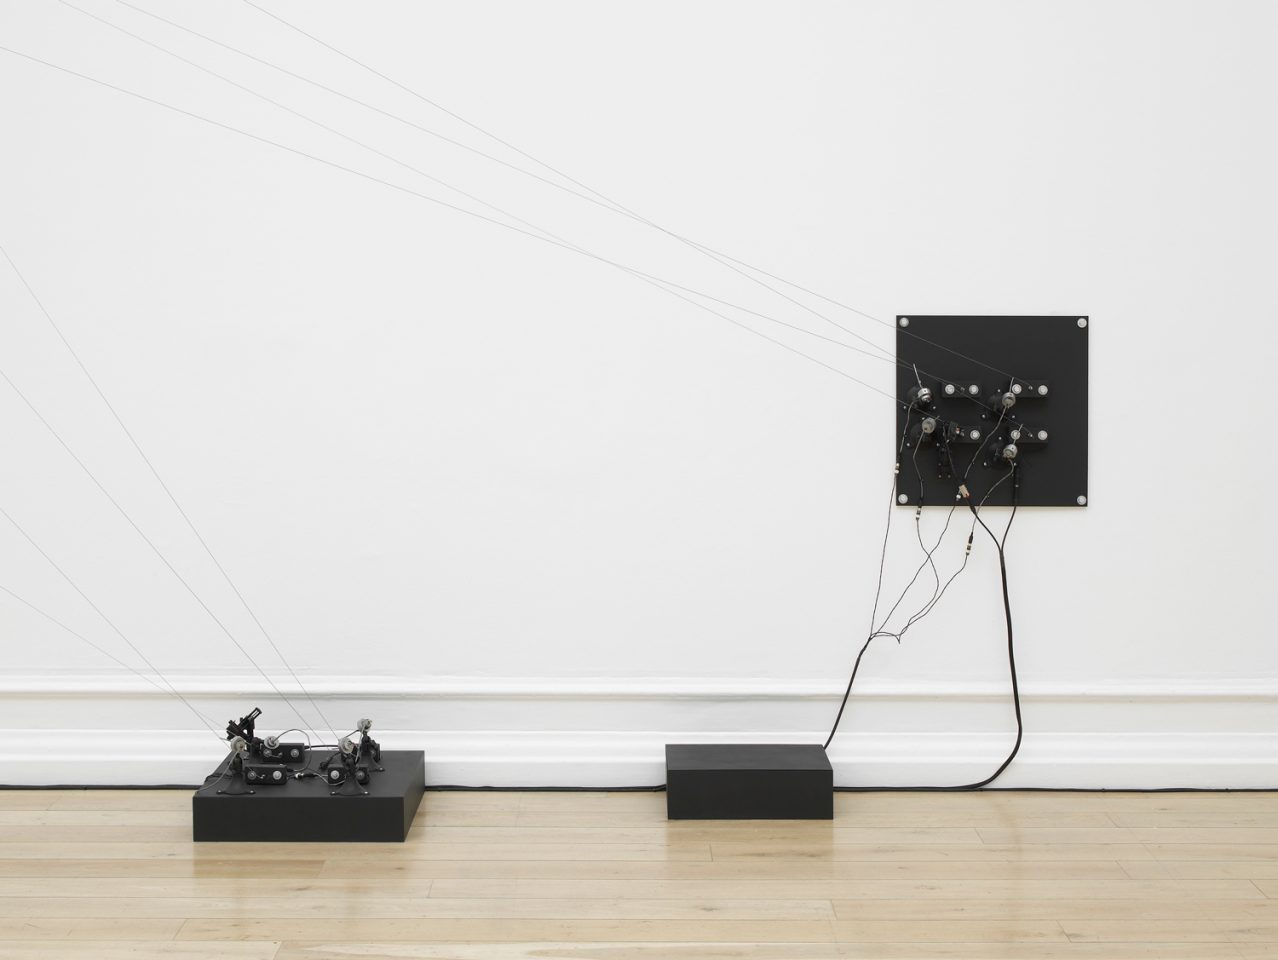 Installation view of At the Moment of Being Heard in the Main Galleries, 2013. Photo: Andy Keate